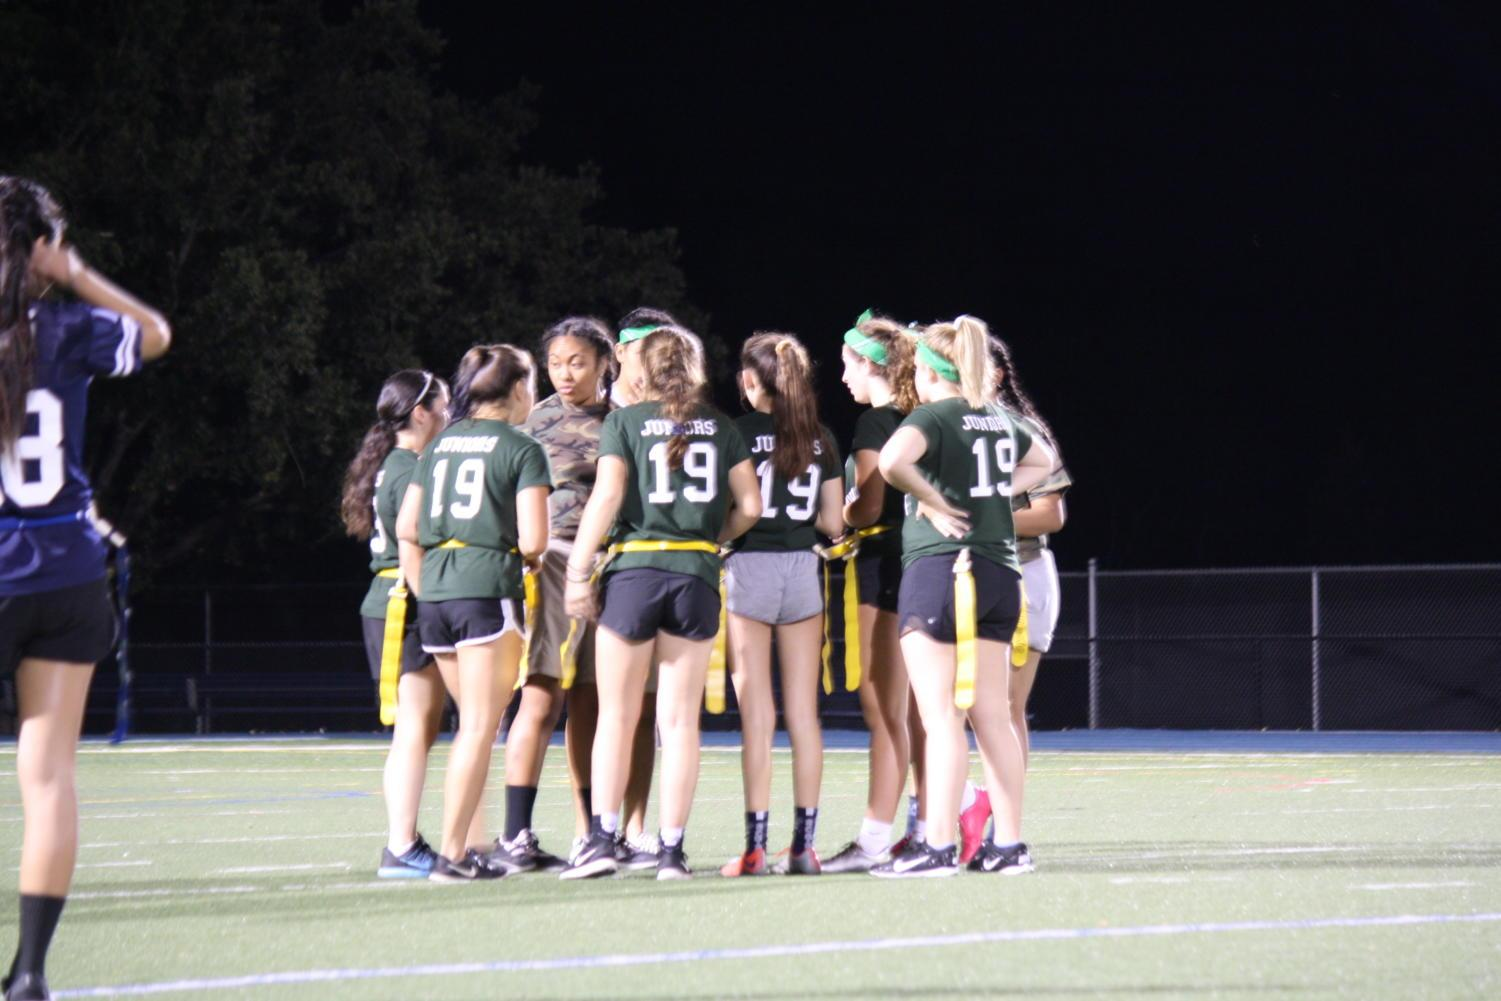 The junior team gathers for a huddle during the Powderpuff game this year against the seniors.